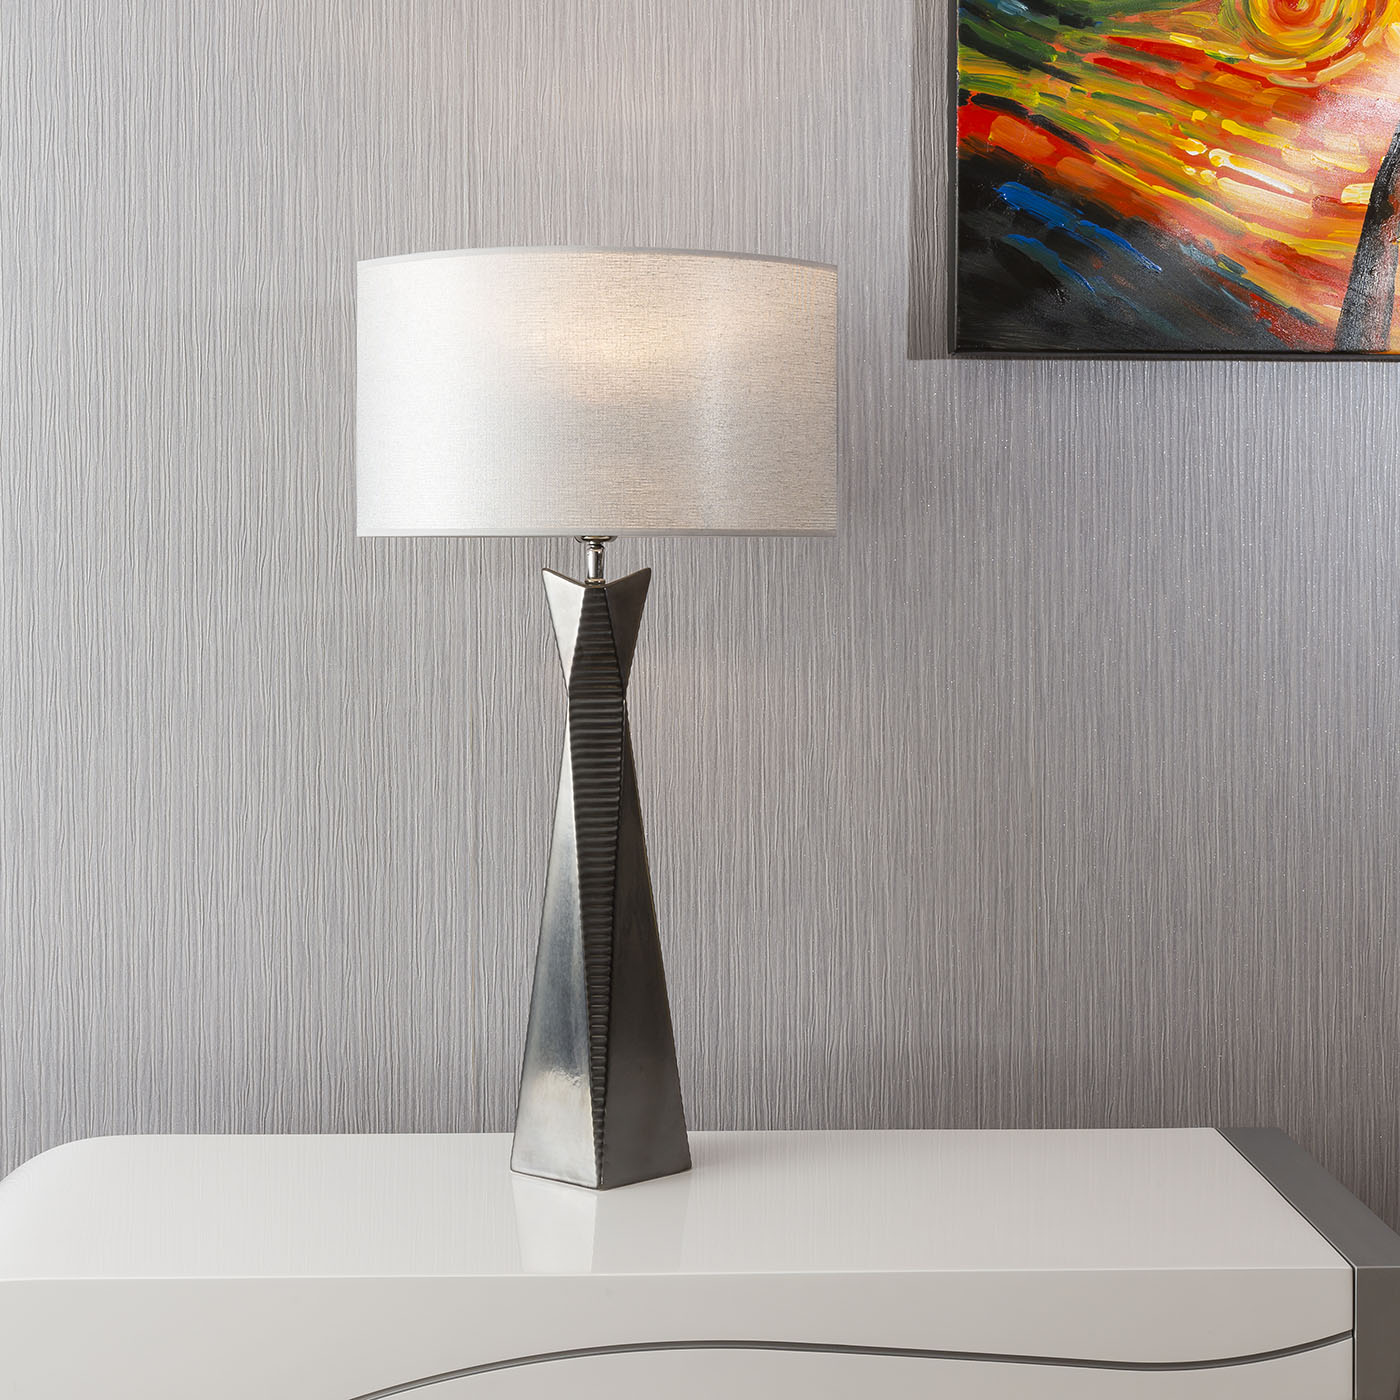 Envy Lighting High End Tall Table Lamp Ceramic Silver Base